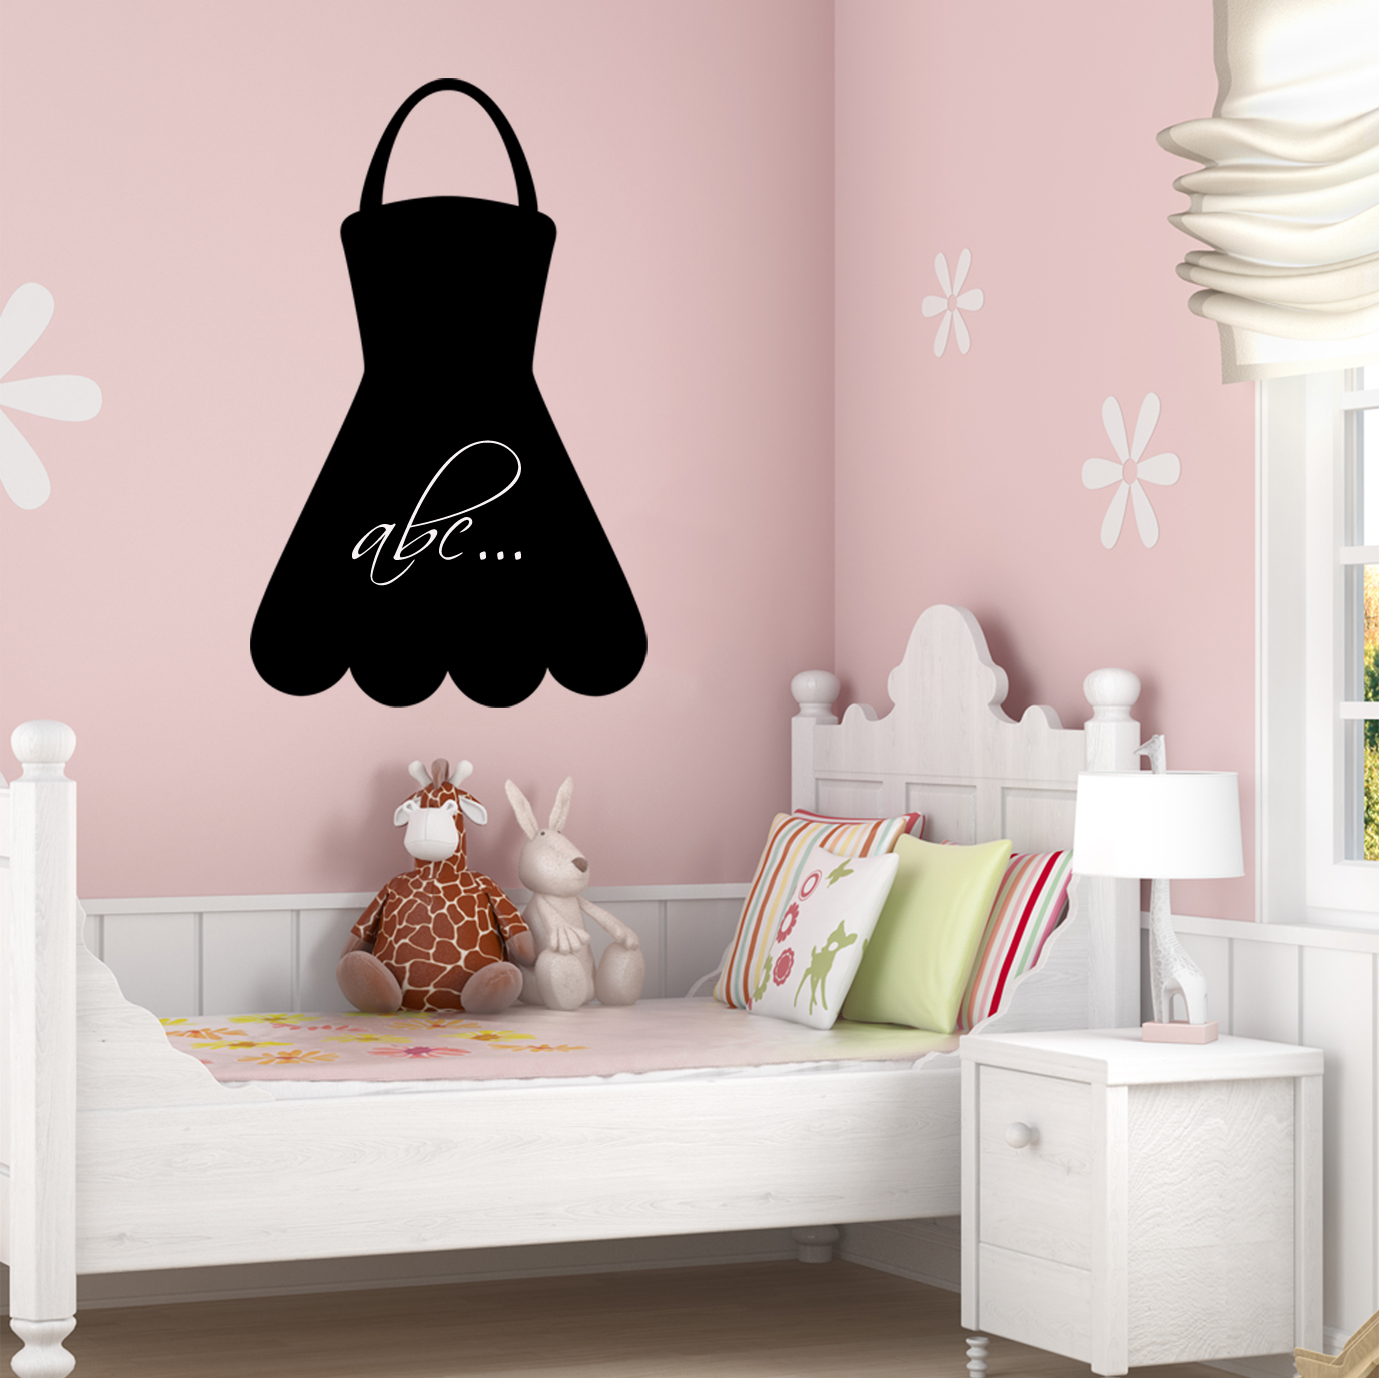 stickers ardoise tablier cuisine pas cher. Black Bedroom Furniture Sets. Home Design Ideas